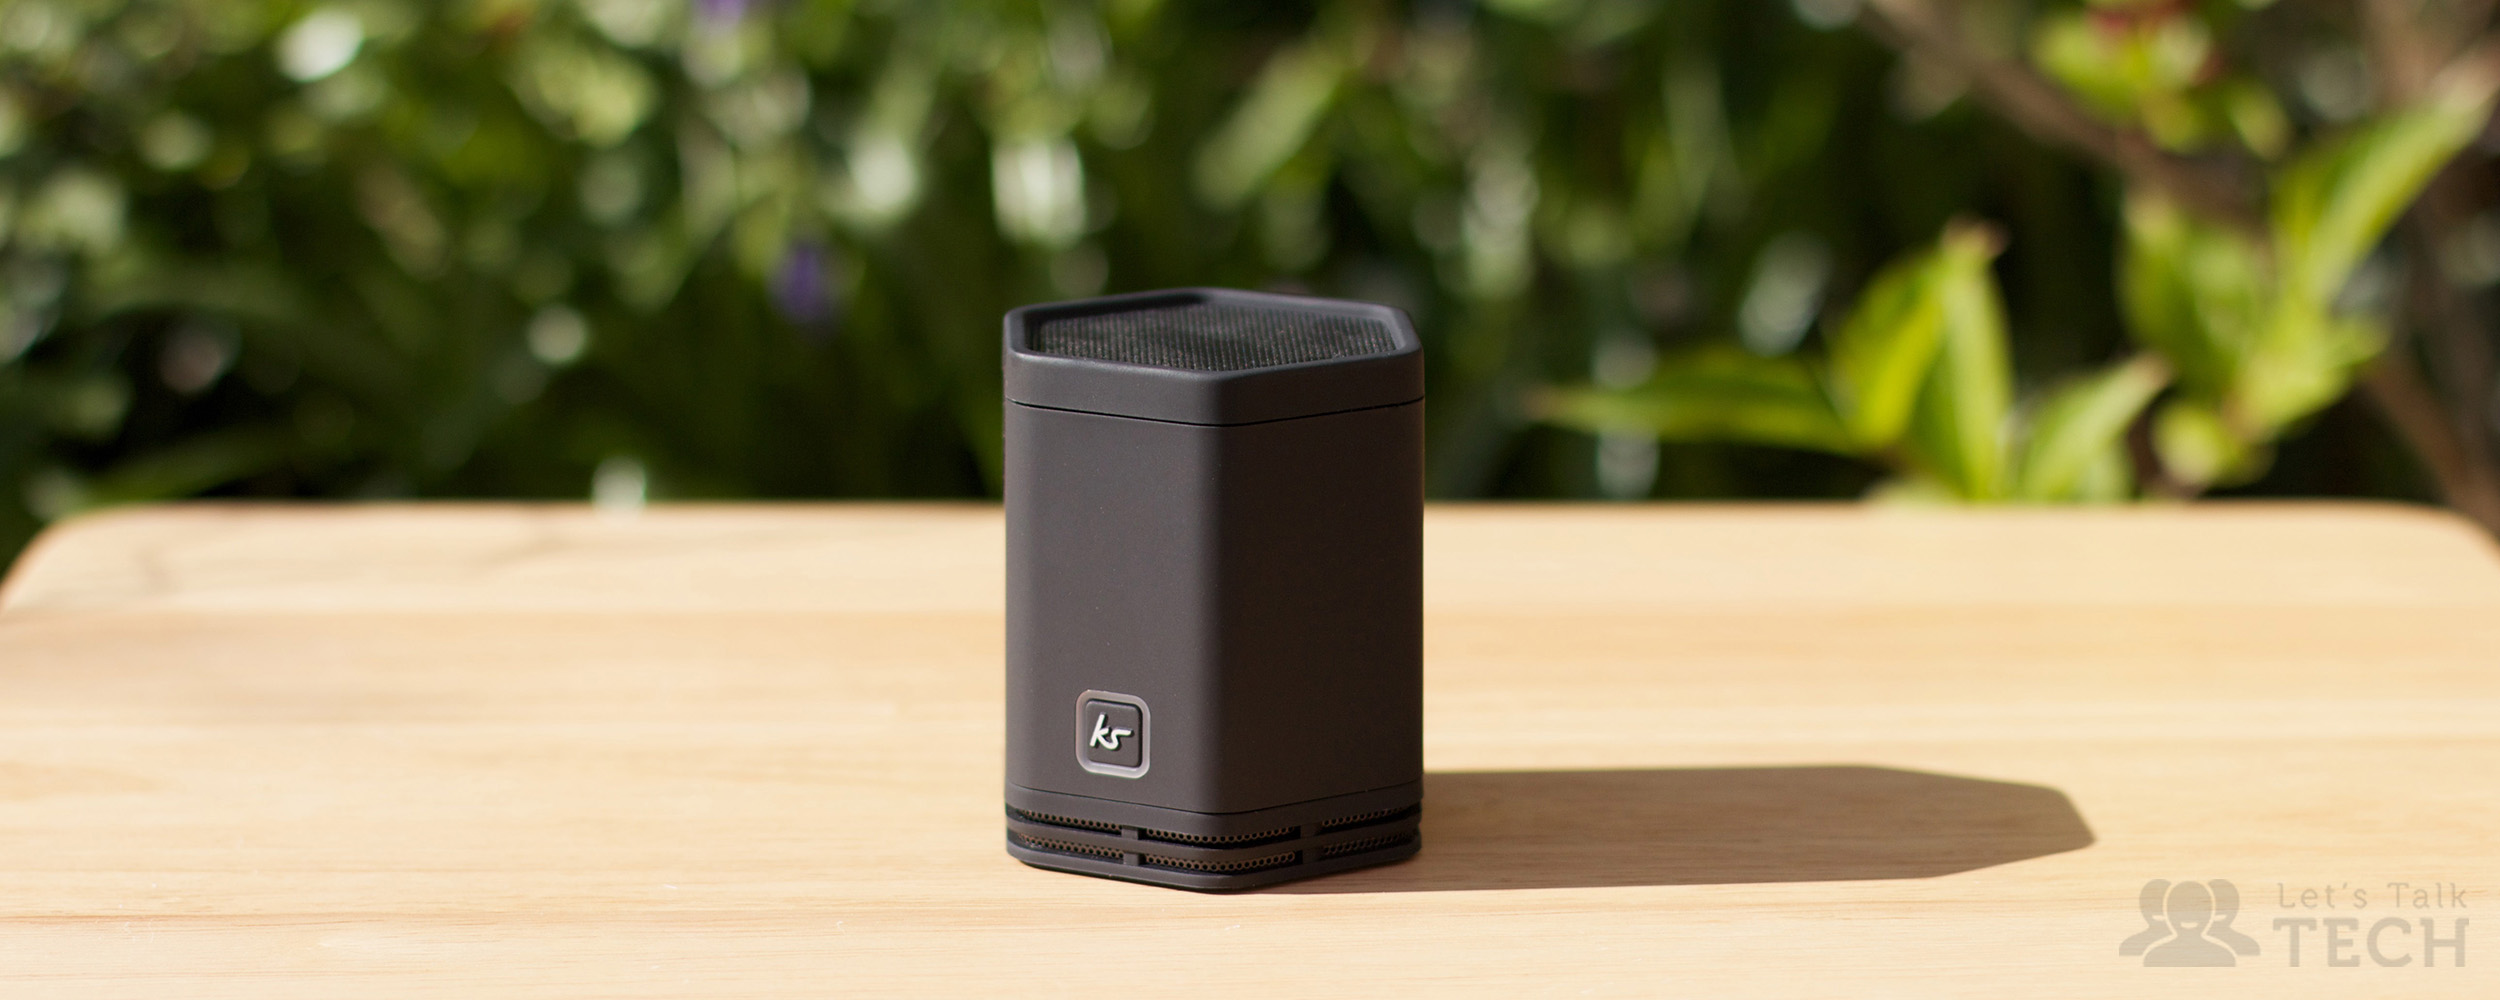 KitSound Pocket Hive Speaker Review: Pocket Rocket Sound